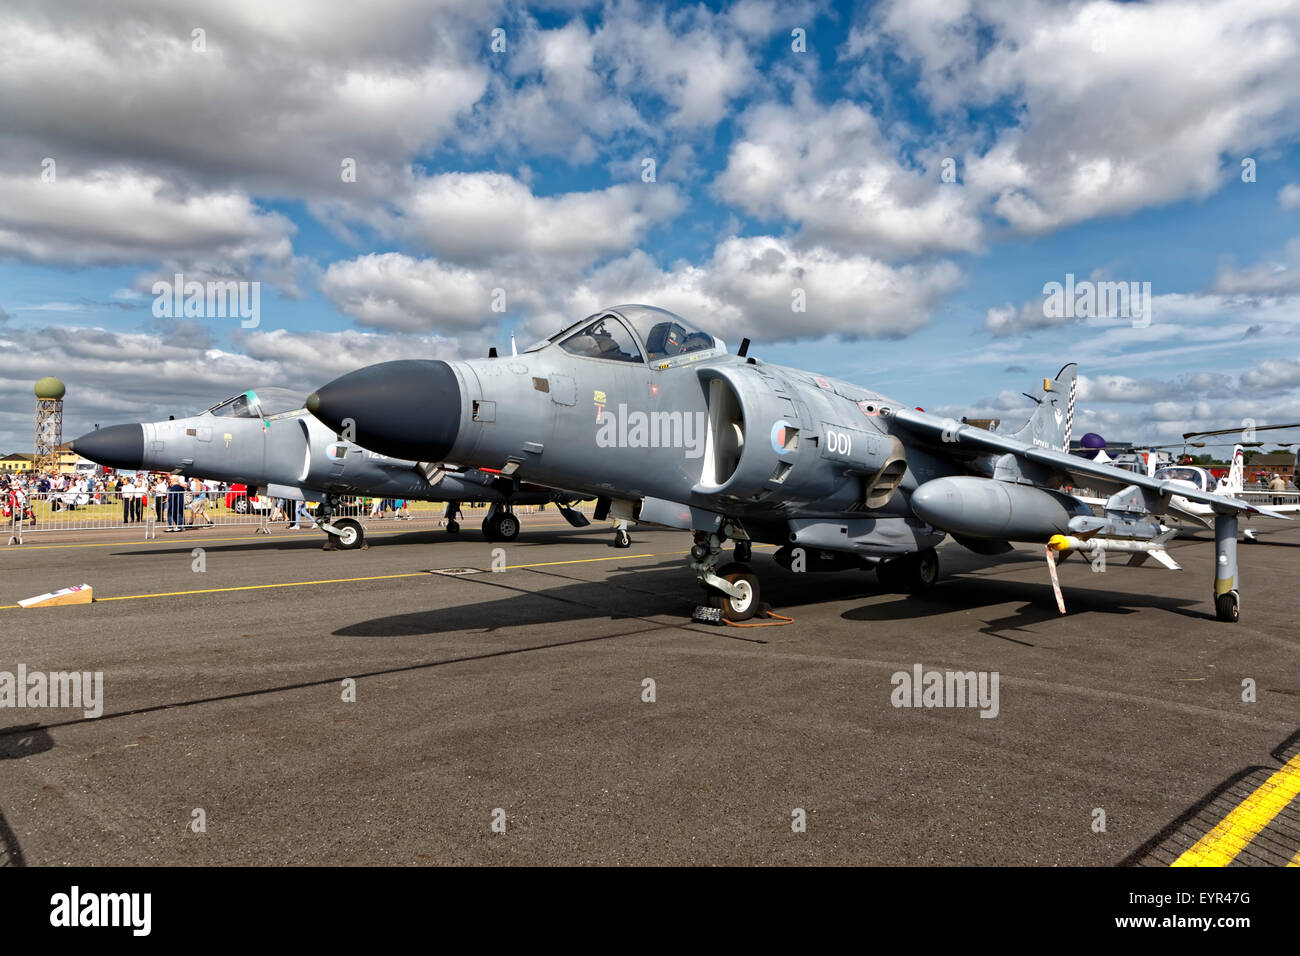 A pair of BAe Sea Harrier FA.2 jump jets on static display at RNAS Yeovilton Air Day 2015. - Stock Image